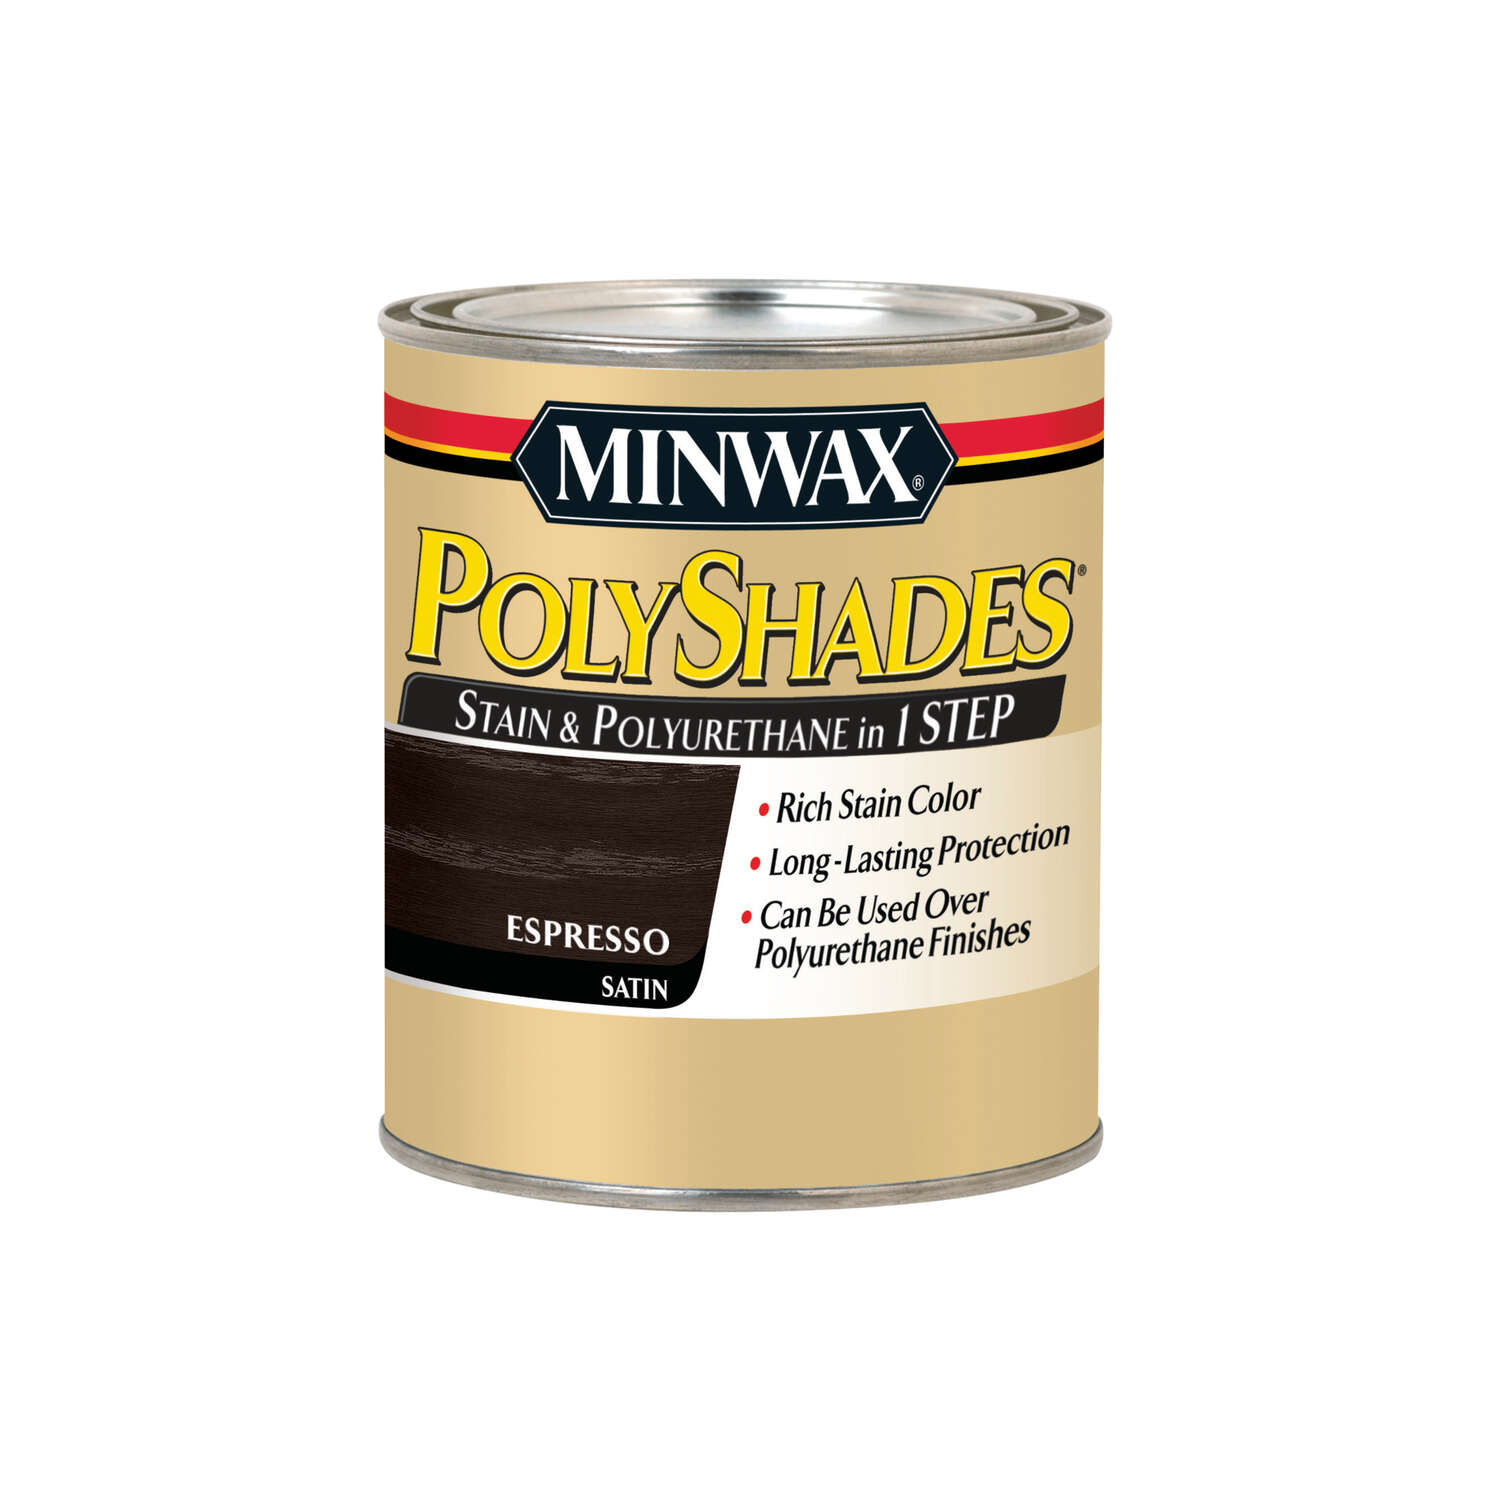 Minwax PolyShades Semi-Transparent Satin Espresso Oil-Based Stain 1 qt.